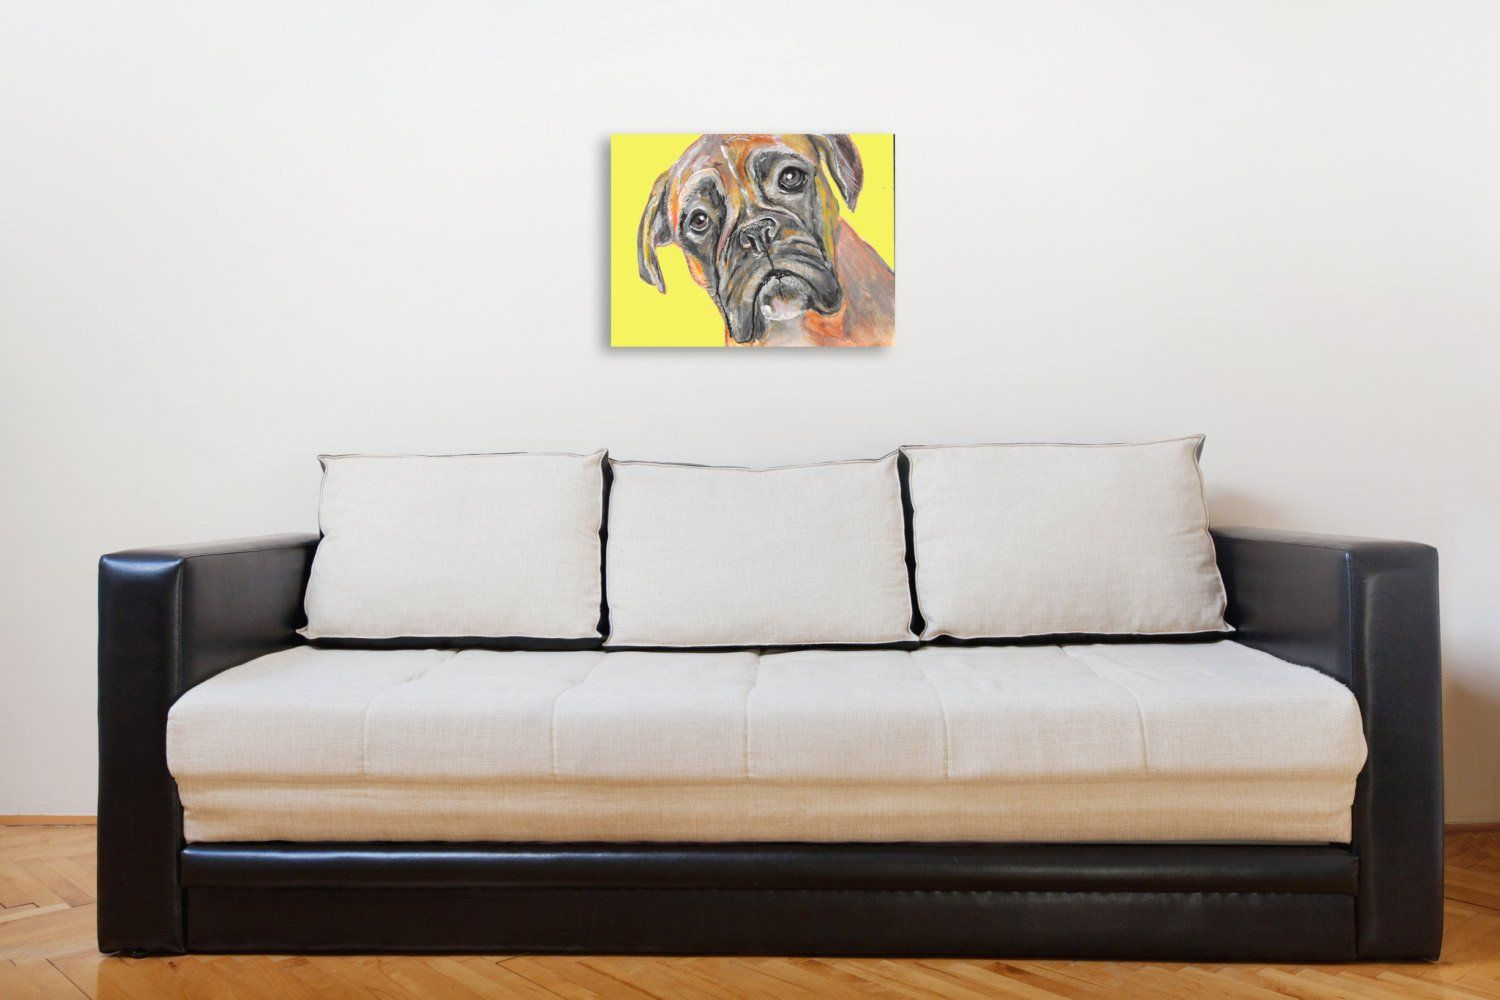 Boxer Dog owner gift, Boxer dog painting print, Brindle Boxer dog pictur… #dogs #DogPainting https://t.co/PAwNjlypRb